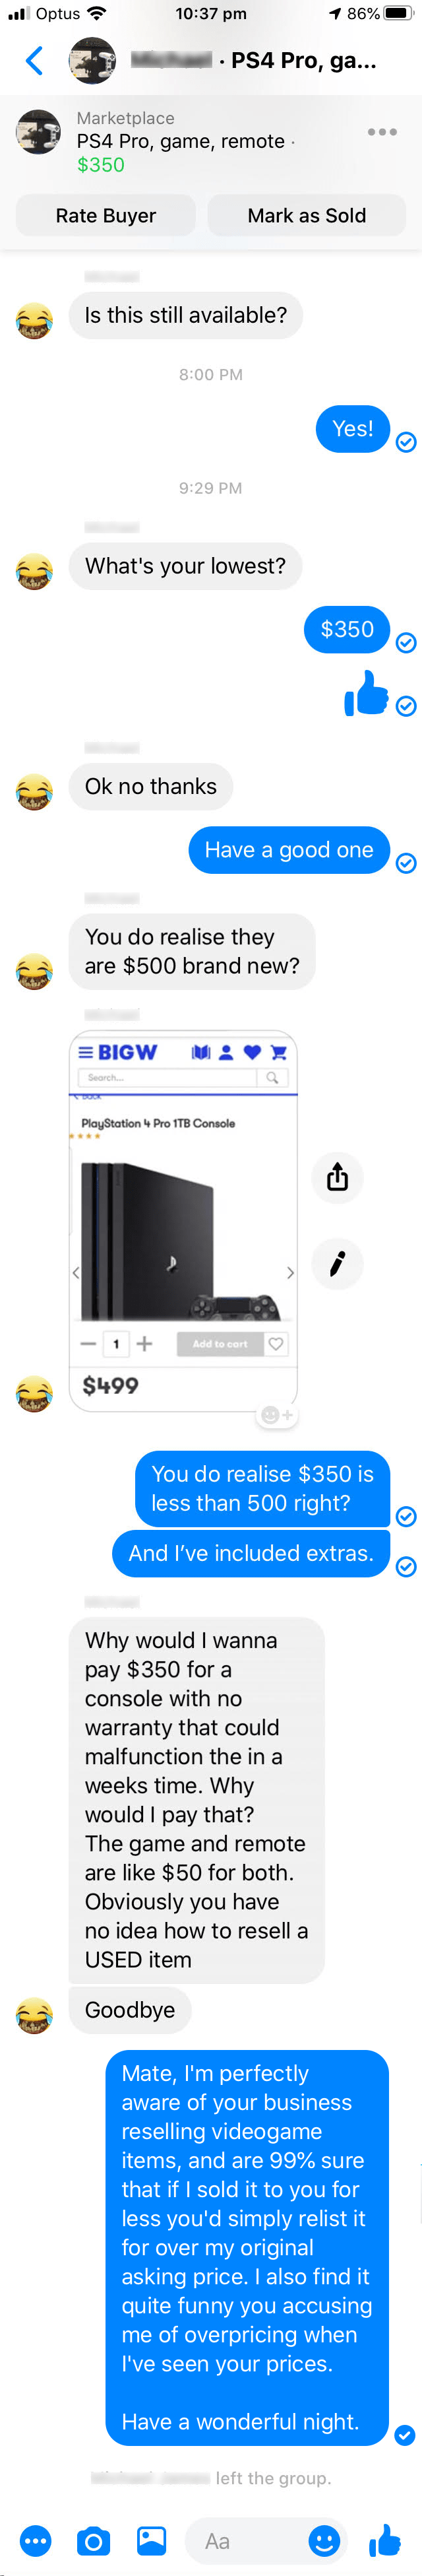 Text - ll Optus 10:37 pm 86% PS4 Pro, ga... Marketplace PS4 Pro, game, remote $350 Rate Buyer Mark as Sold Is this still available? 8:00 PM Yes! 9:29 PM What's your lowest? $350 Ok no thanks Have a good one You do realise they are $500 brand new? = BIGW Search. PlayStation 4 Pro 1TB Console Add to cart $499 You do realise $350 is less than 500 right? And I've included extras. Why would I wanna pay $350 for a console with no warranty that could malfunction the in a weeks time. Why would I pay tha